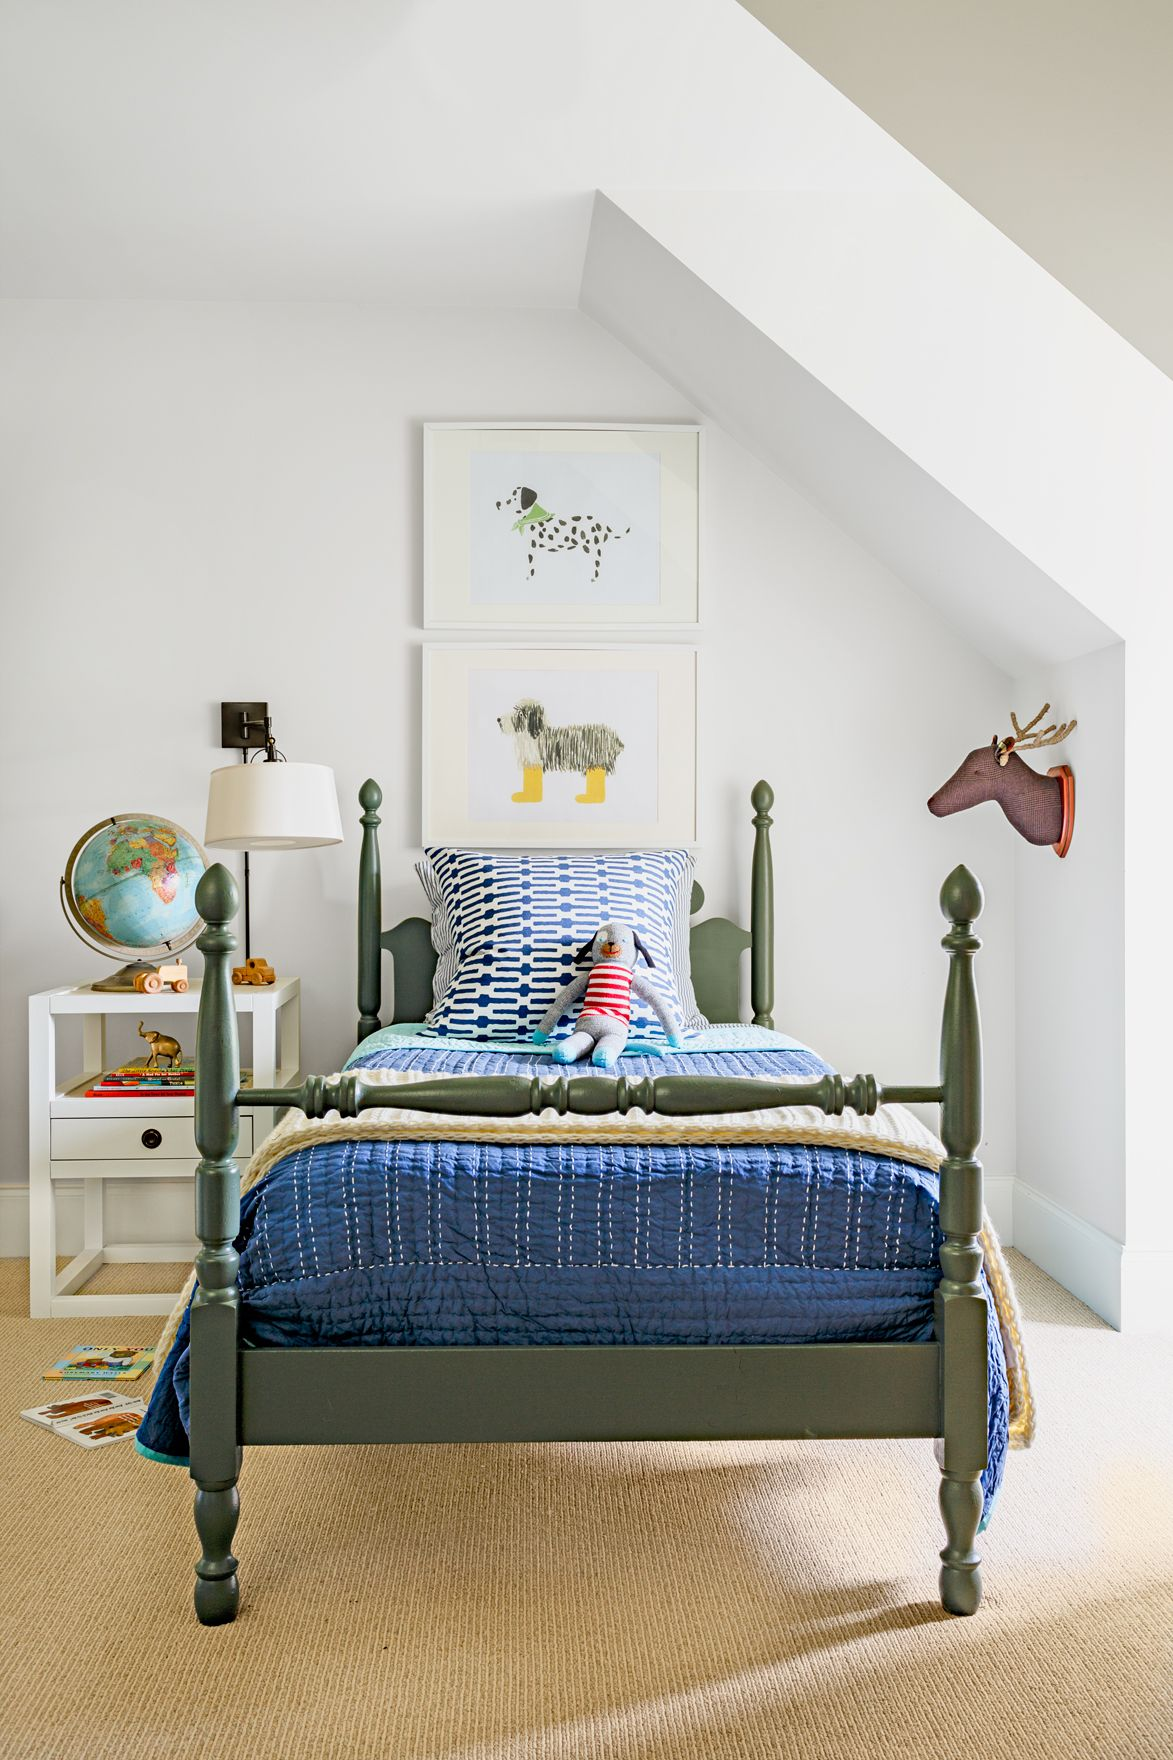 50 Kids Room Decor Ideas Bedroom Design And Decorating For Kids